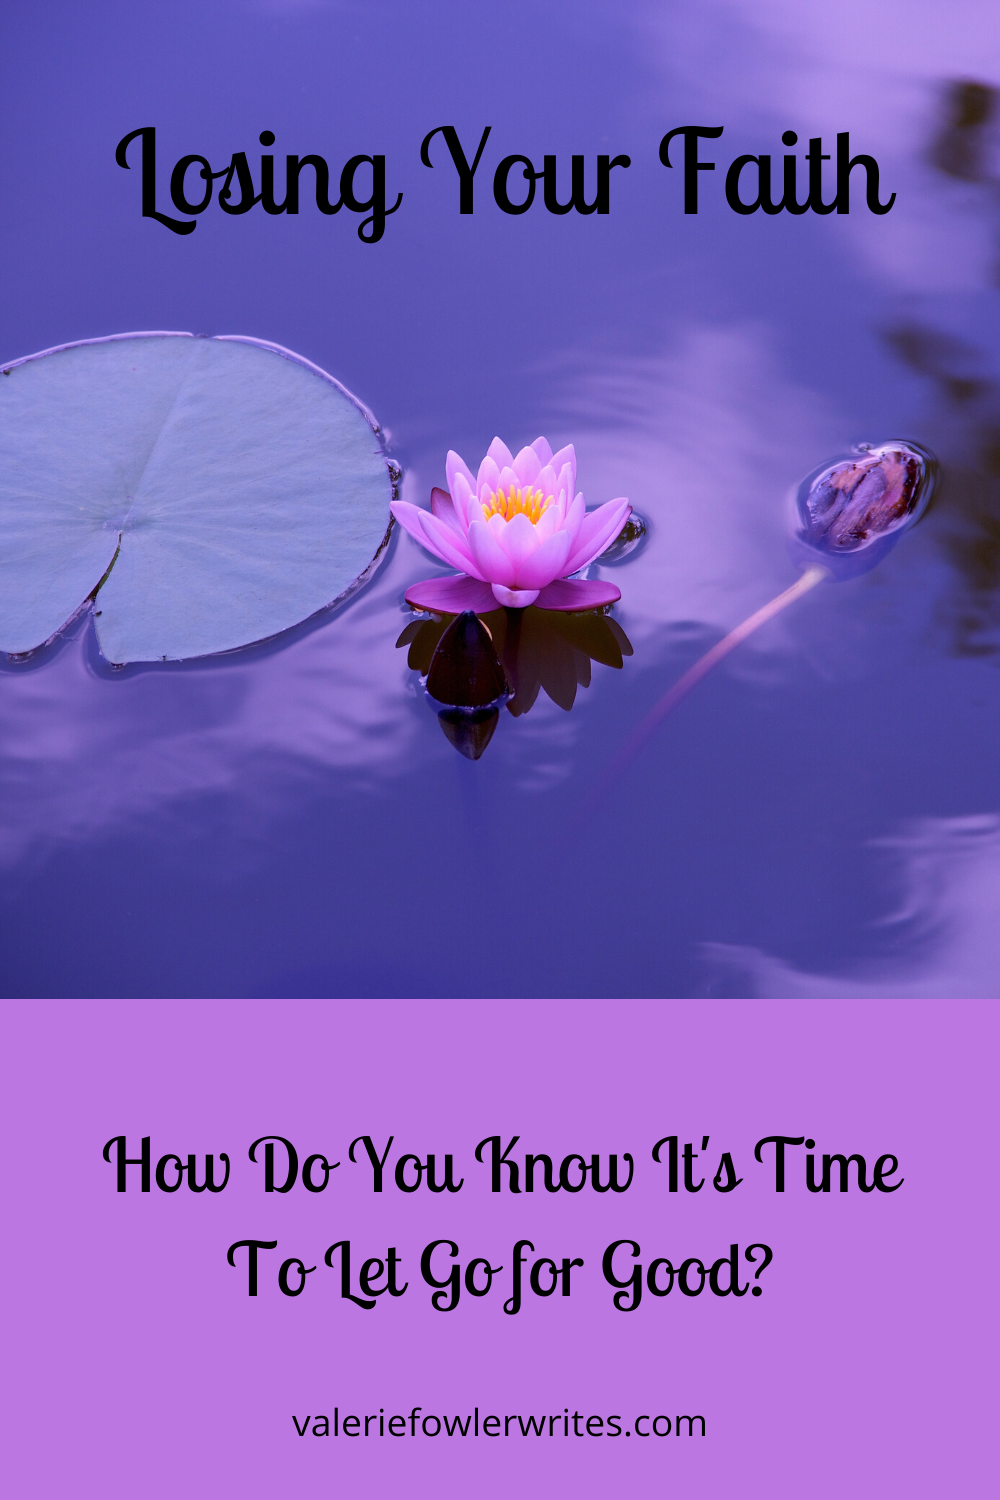 Lily pad, light pink flower, and tadpole in the water, which has a purple hue.